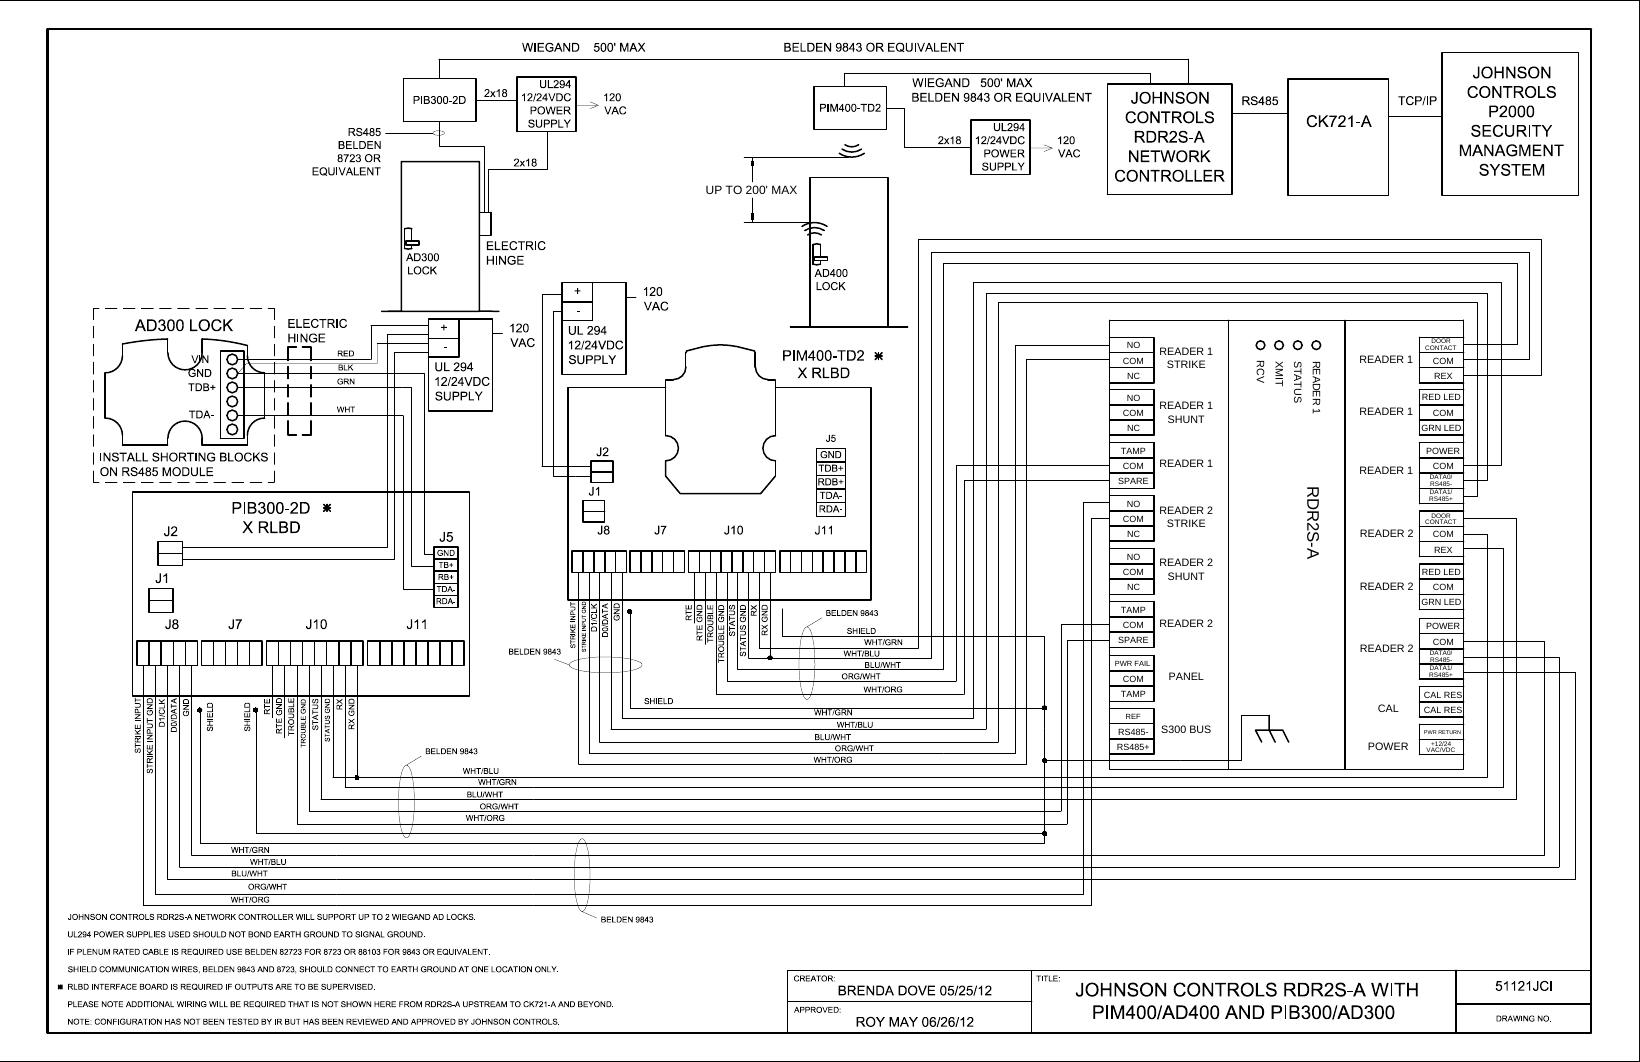 hight resolution of schlage electronics ad300 ad400 wiring diagram johnson controlsschlage electronics ad300 ad400 wiring diagram johnson controls rdr2s